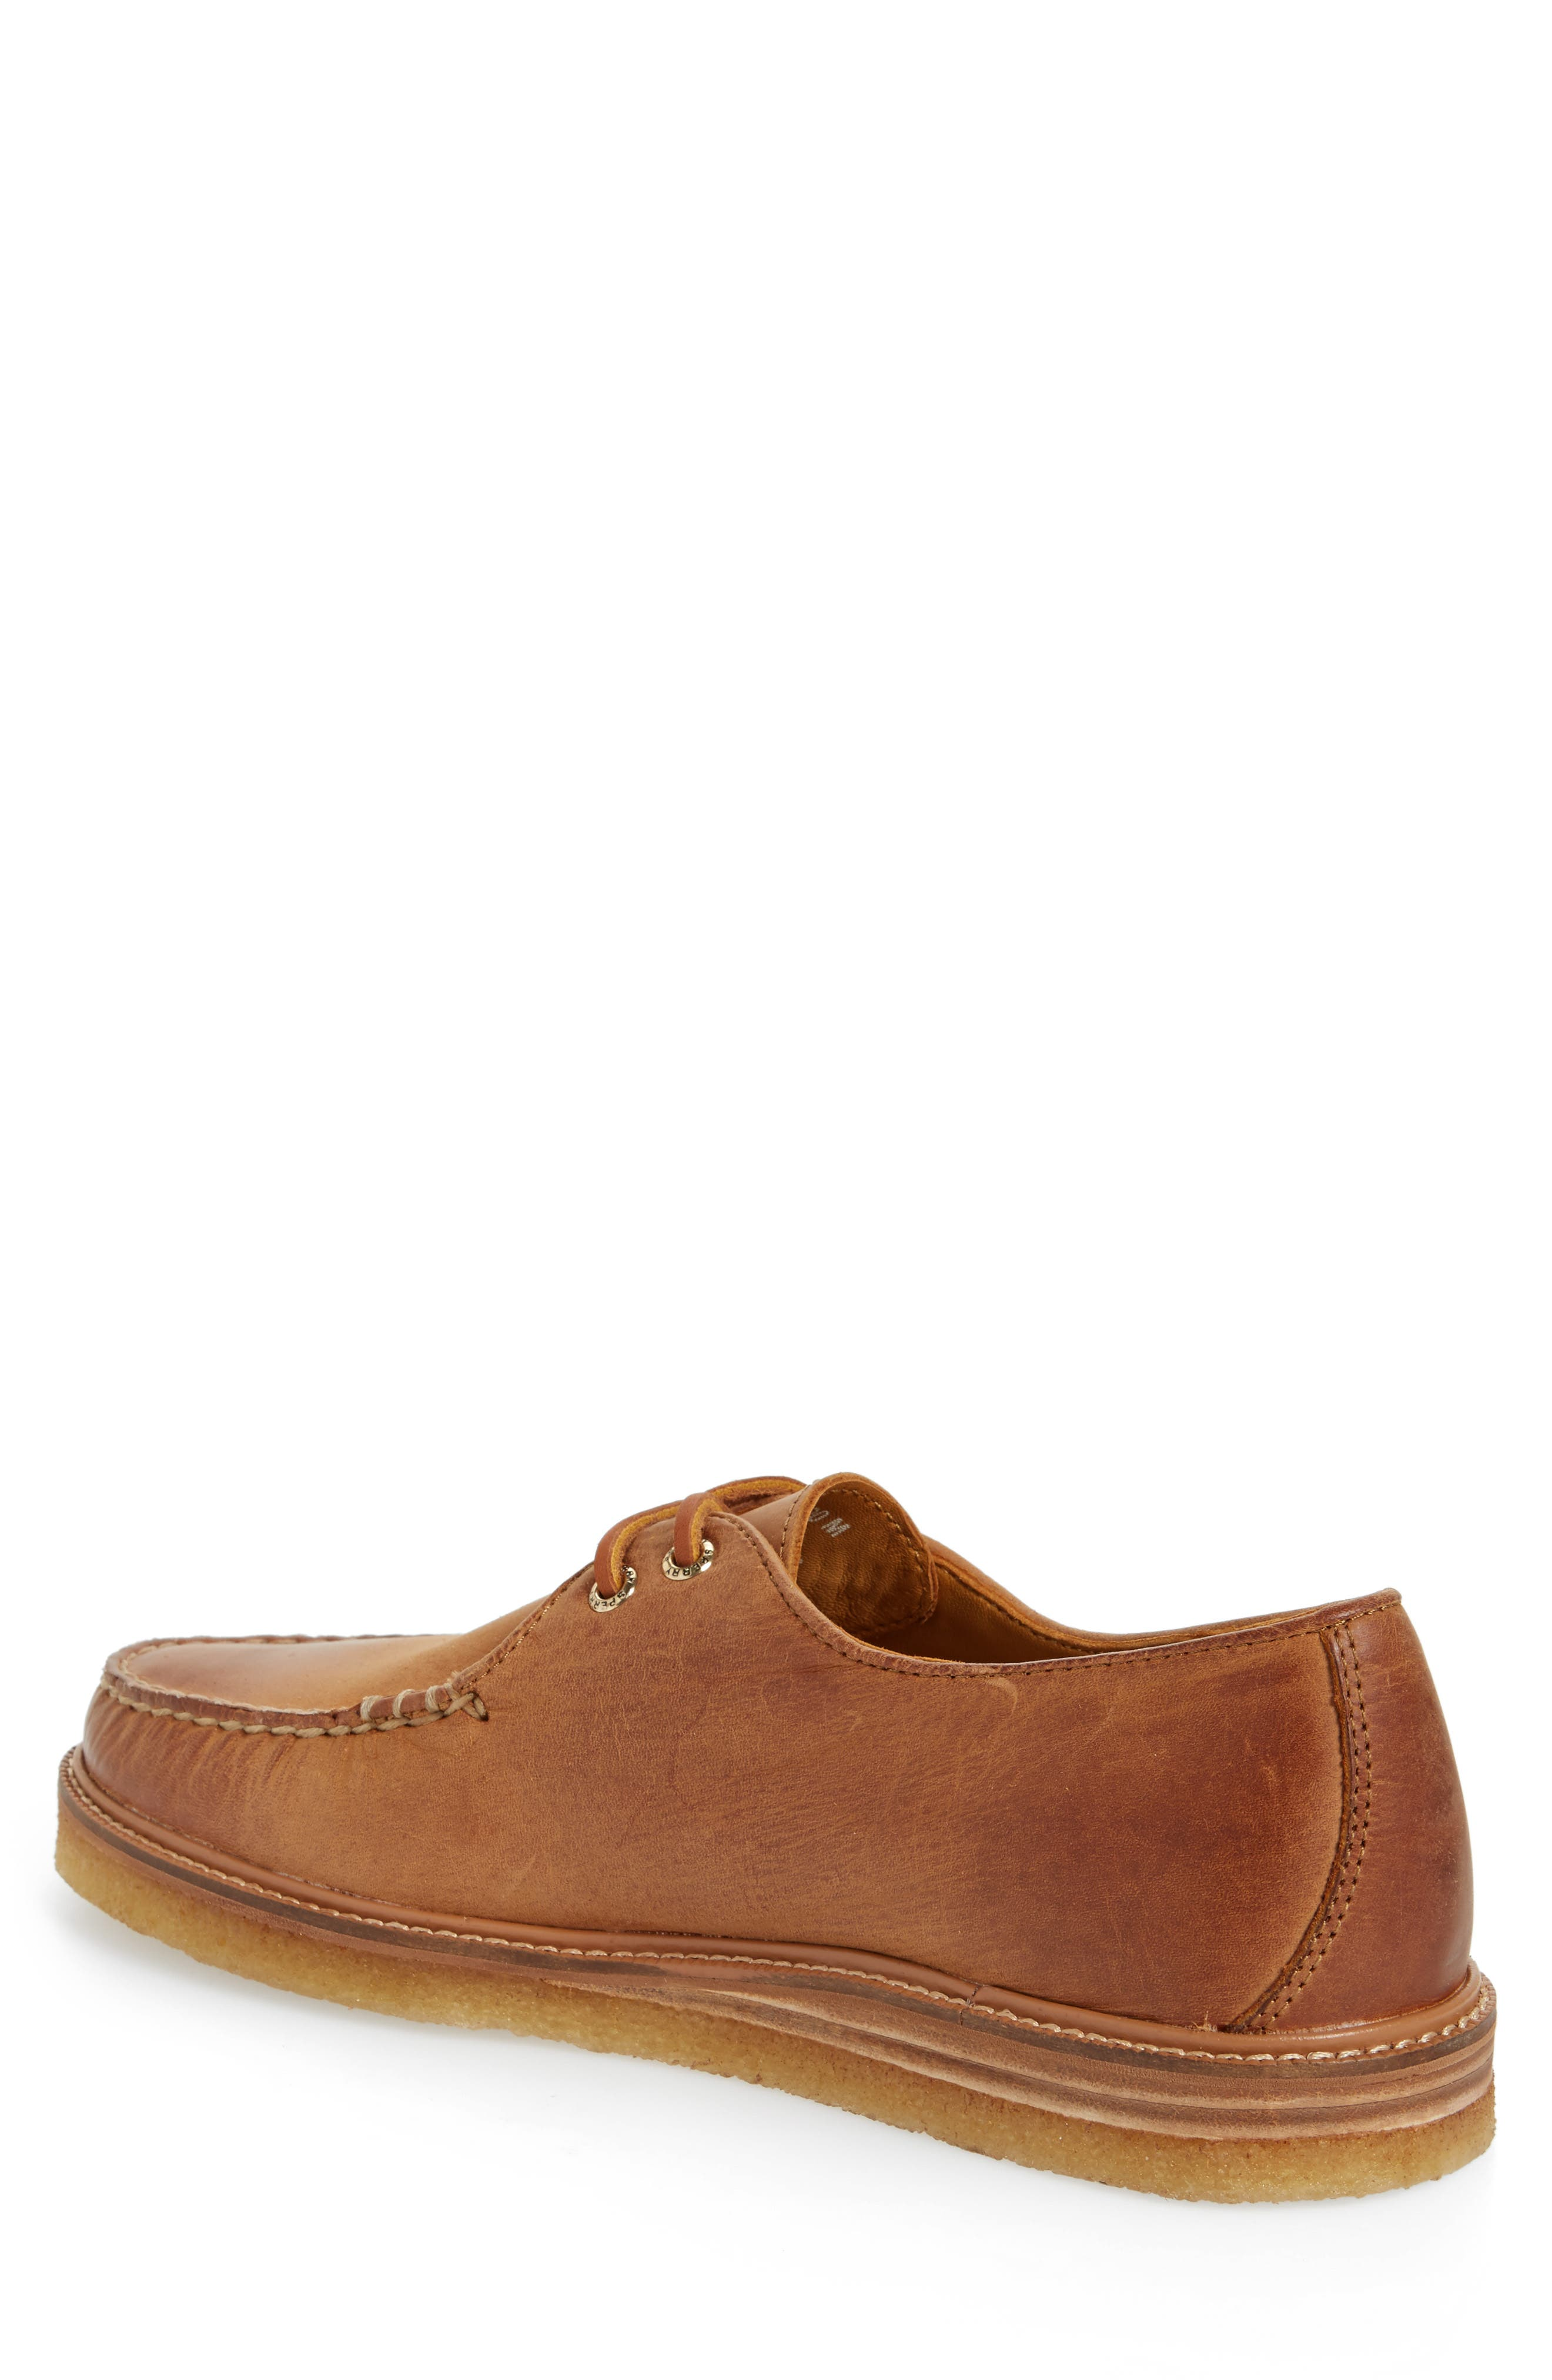 Gold Cup Captain's Crepe Sole Oxford,                             Alternate thumbnail 2, color,                             Tan Leather